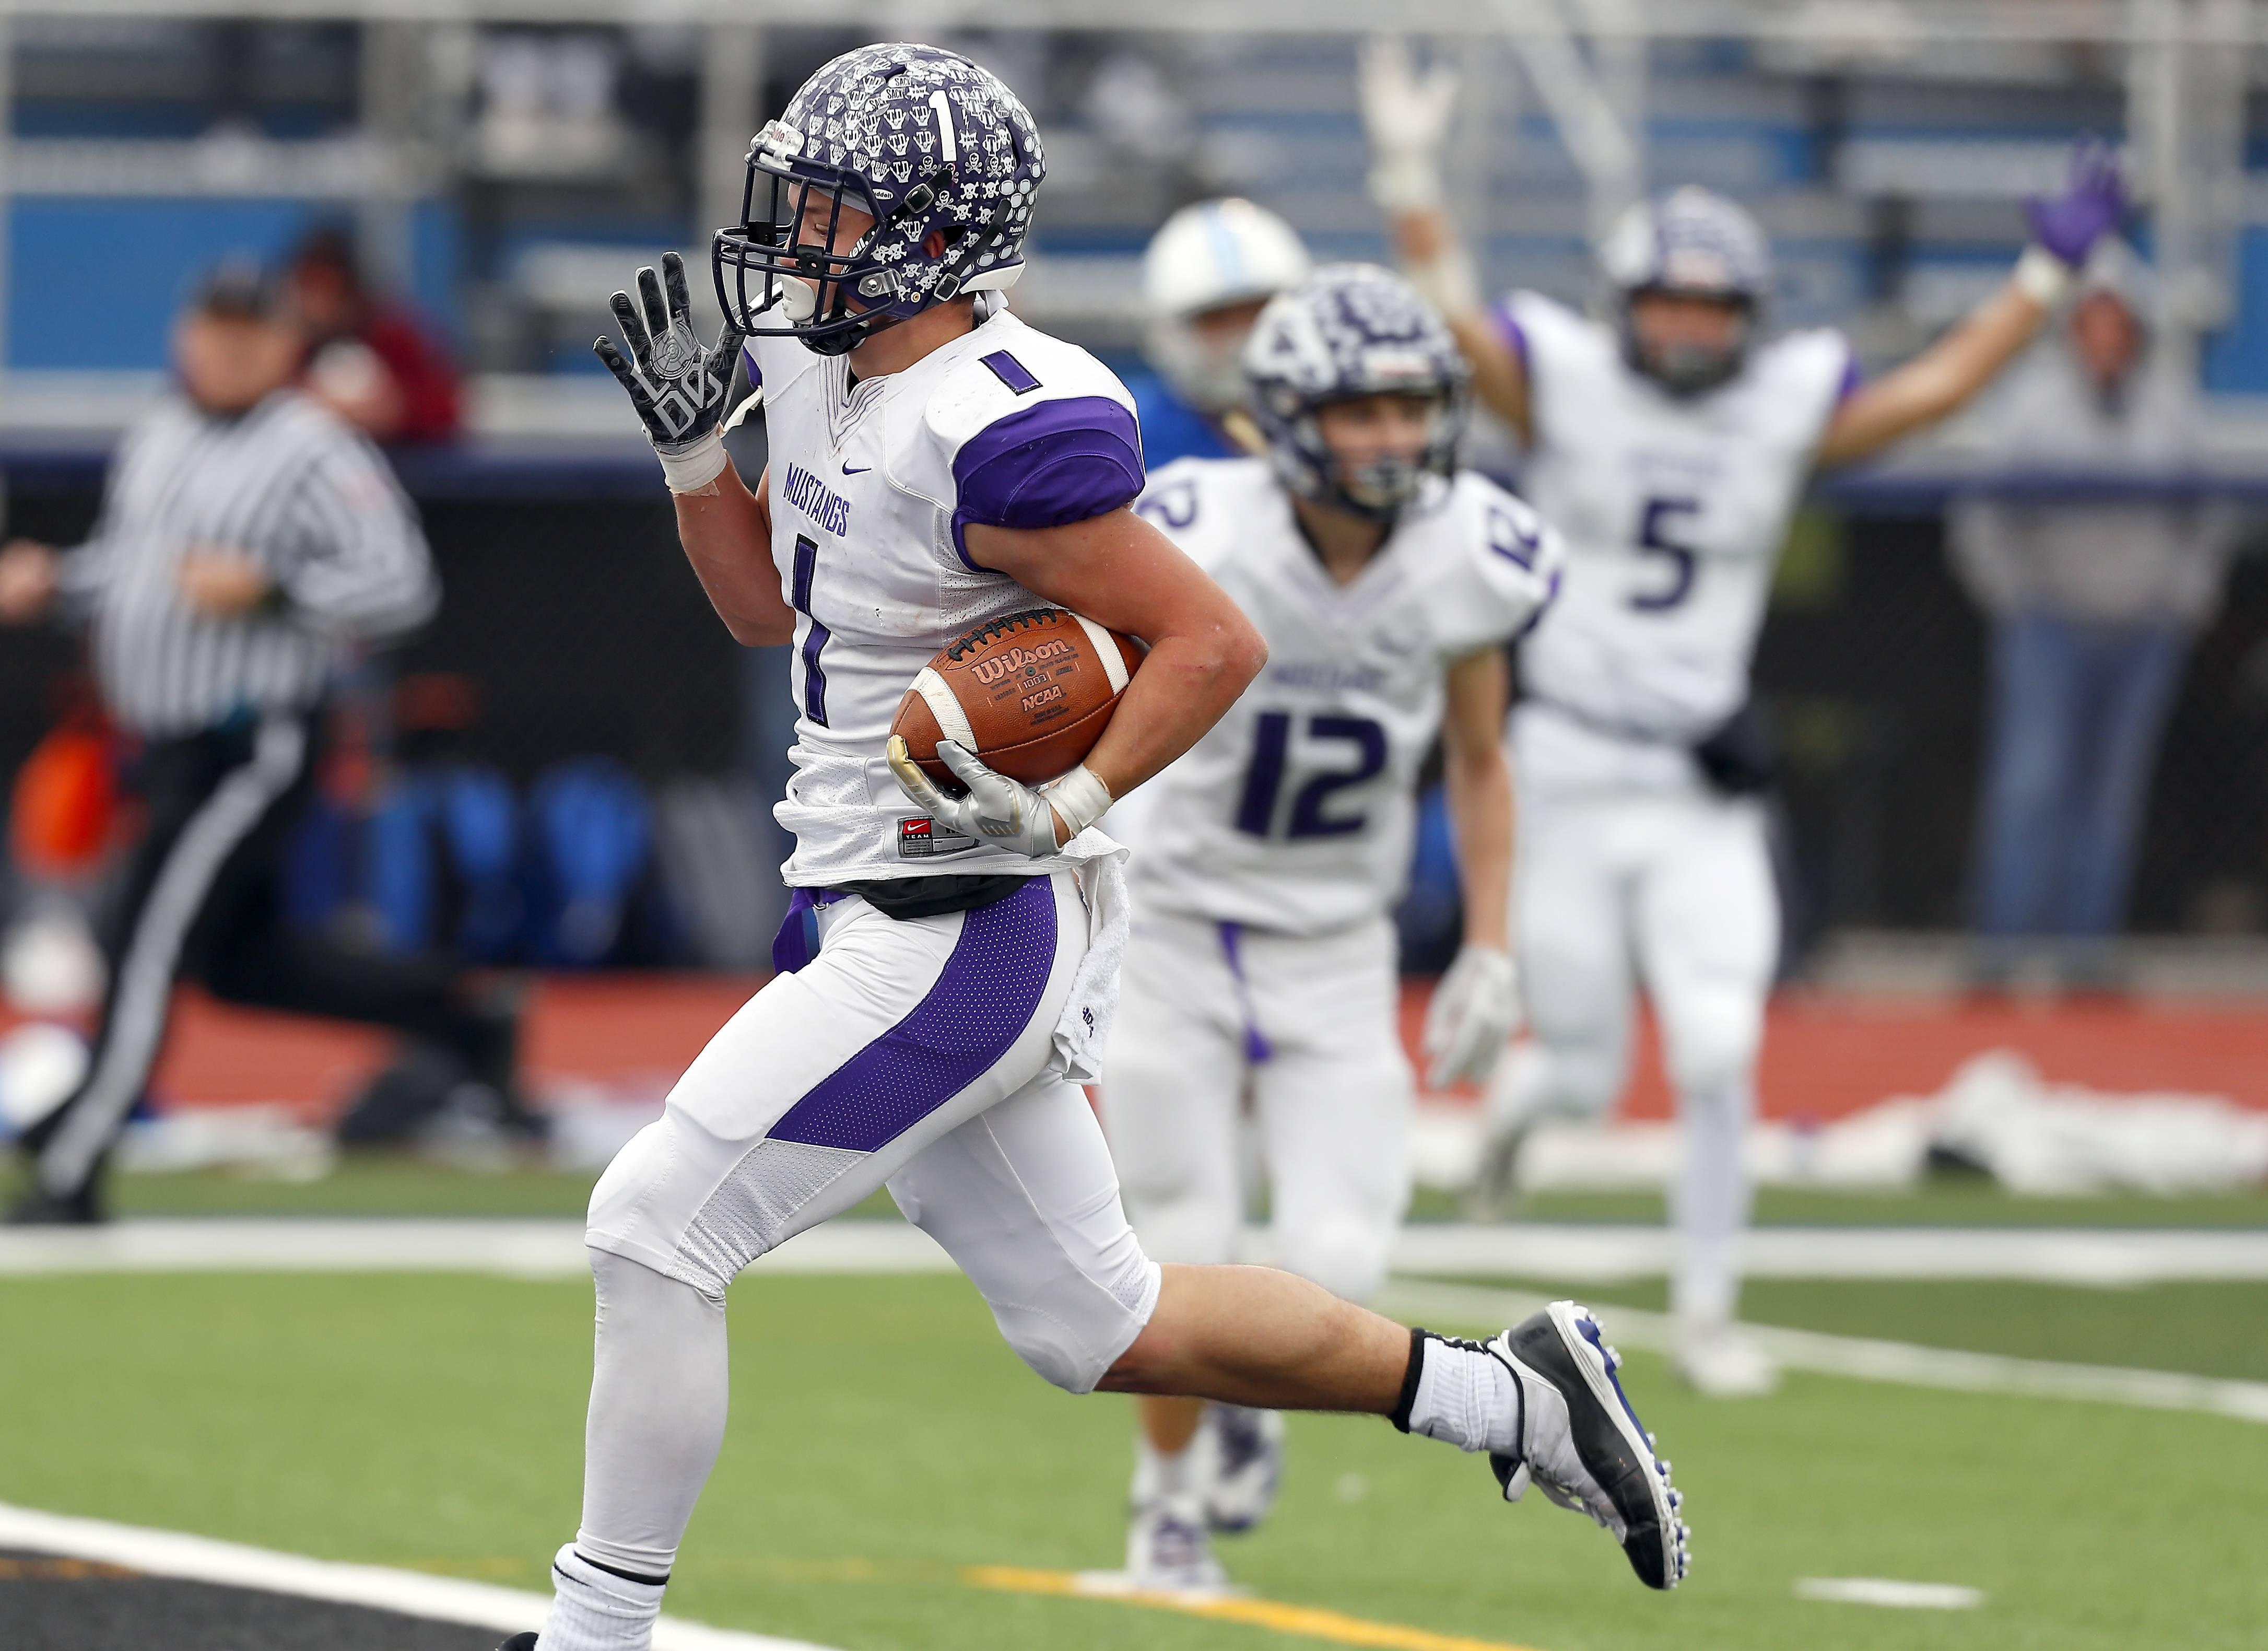 Rolling Meadows' Jace O'Hara (1) heads in the end zone Saturday during IHSA Class 7A playoff football in St. Charles.